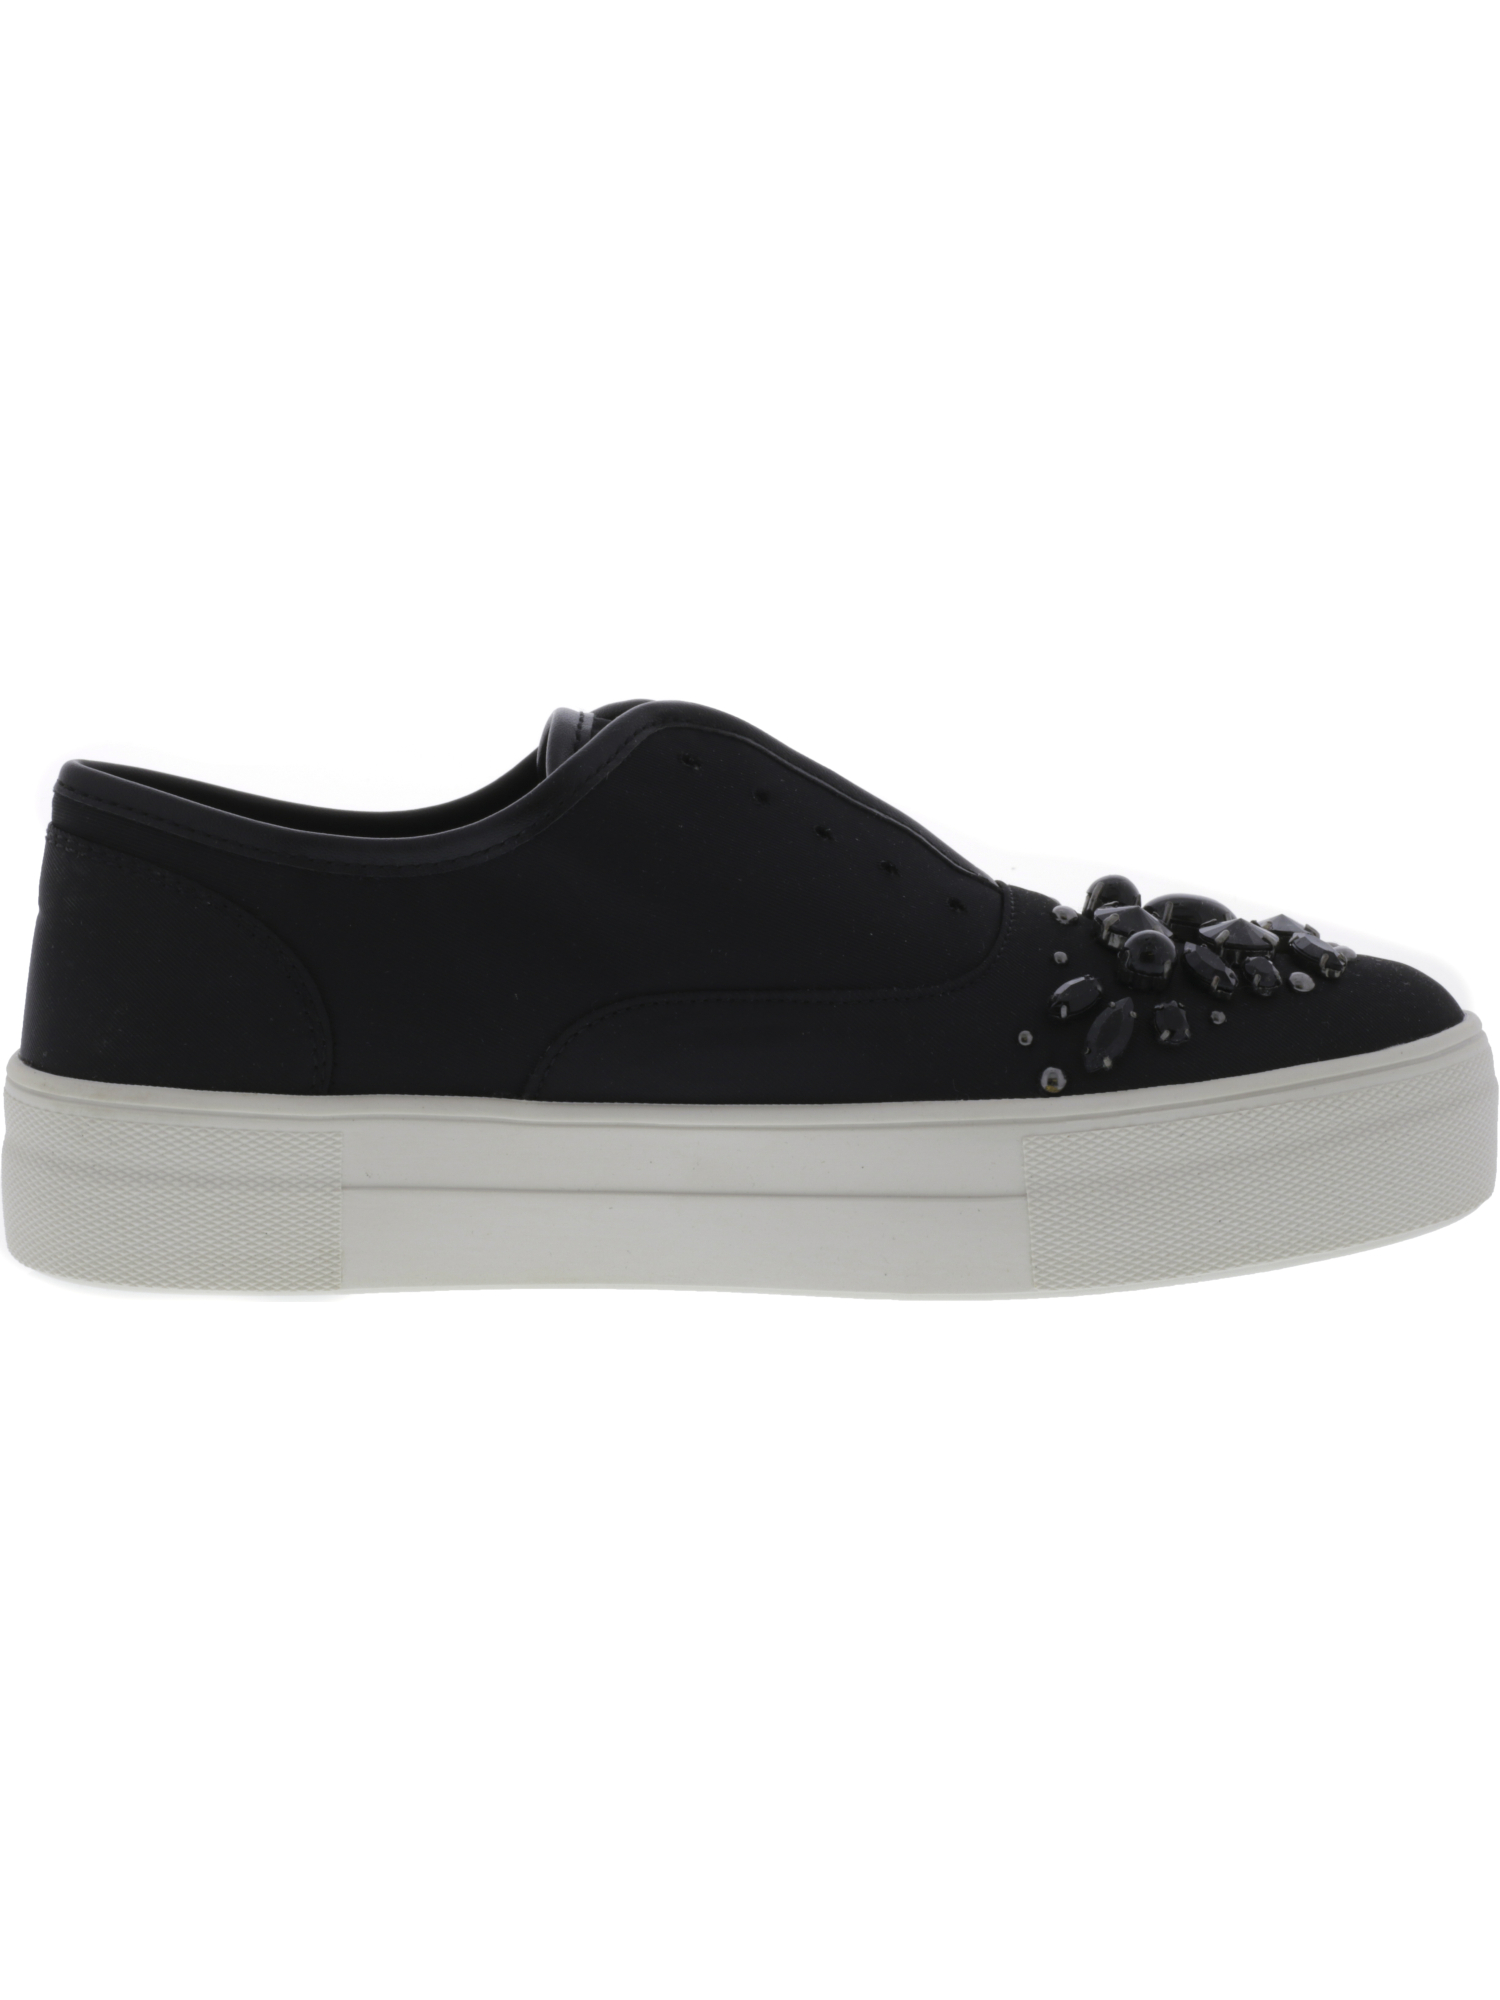 Steve-Madden-Women-039-s-Passion-Ankle-High-Fabric-Slip-On-Shoes thumbnail 6